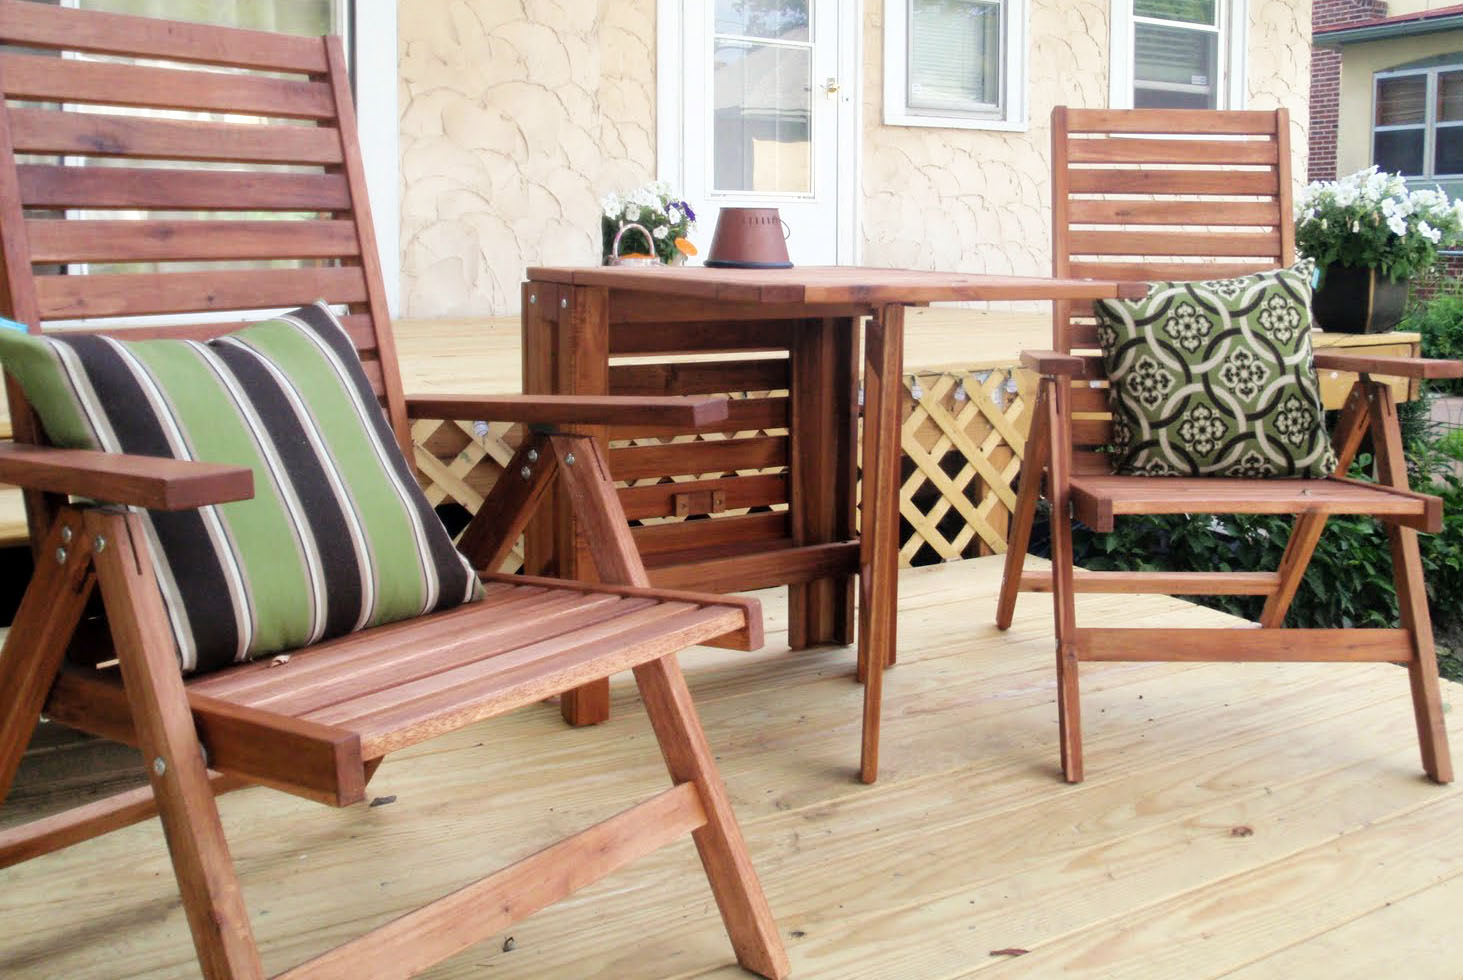 Small balcony furniture option homesfeed Wooden furniture pics